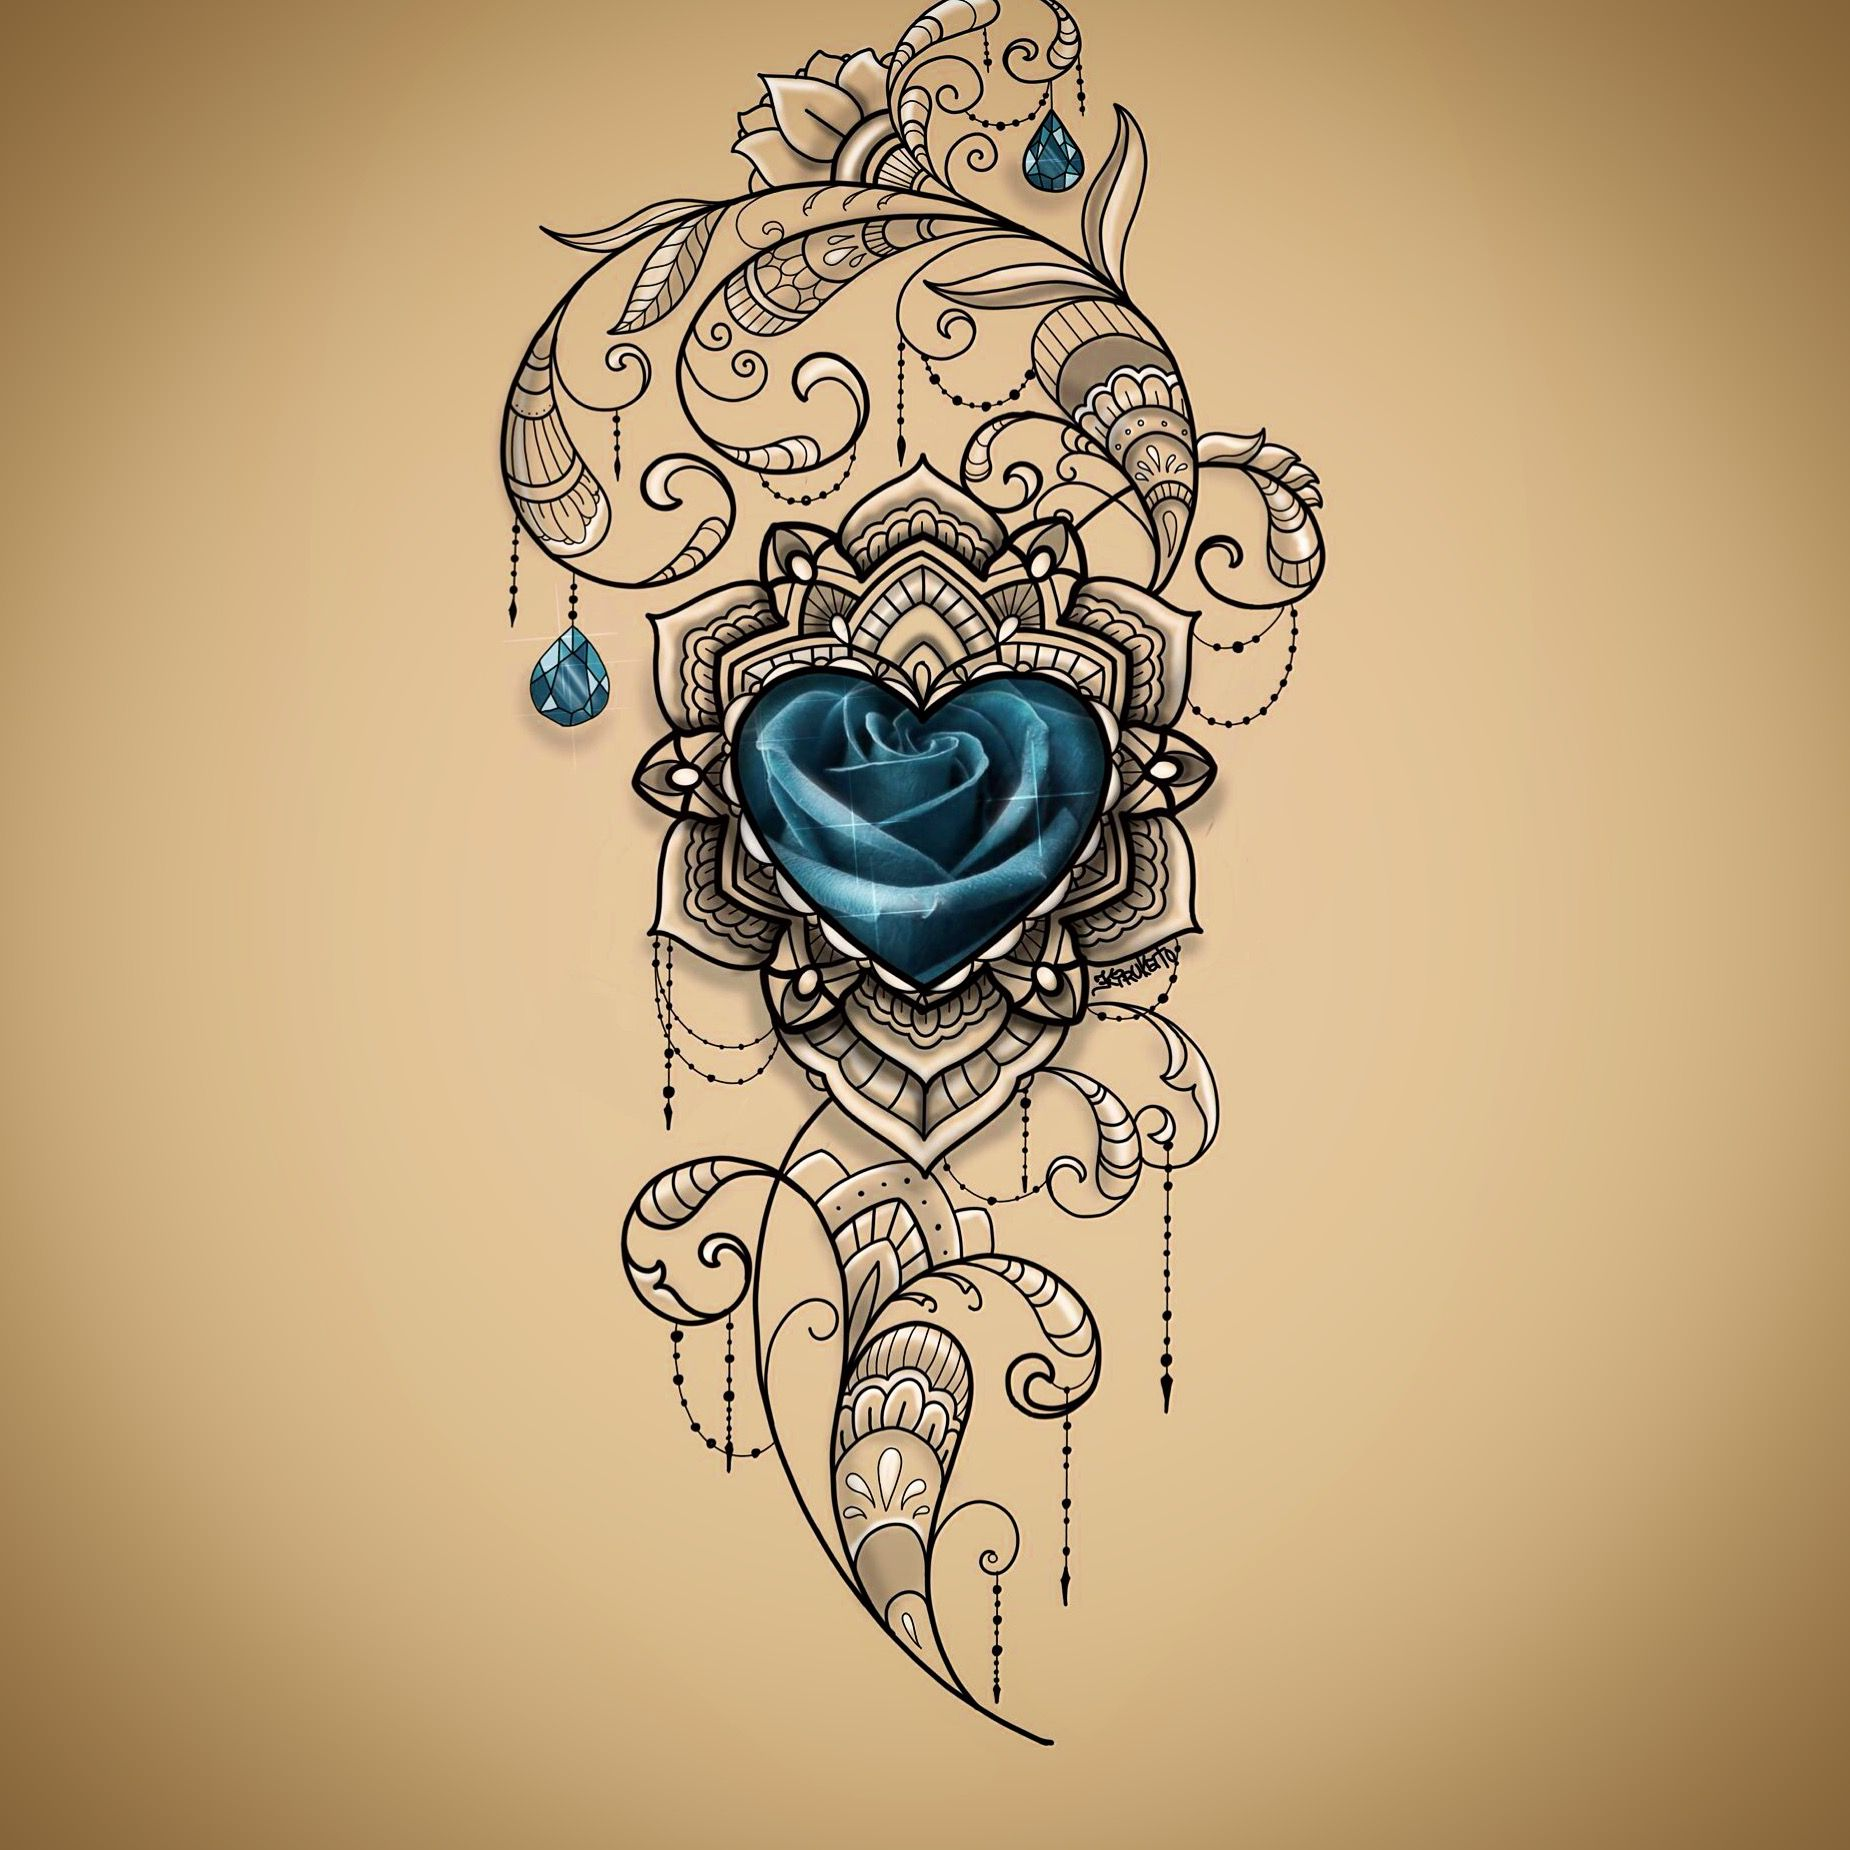 Pin By Clare Green On My Sketches My Art S 22 04 17g Blue Rose Tattoos Body Art Tattoos Jewel Tattoo